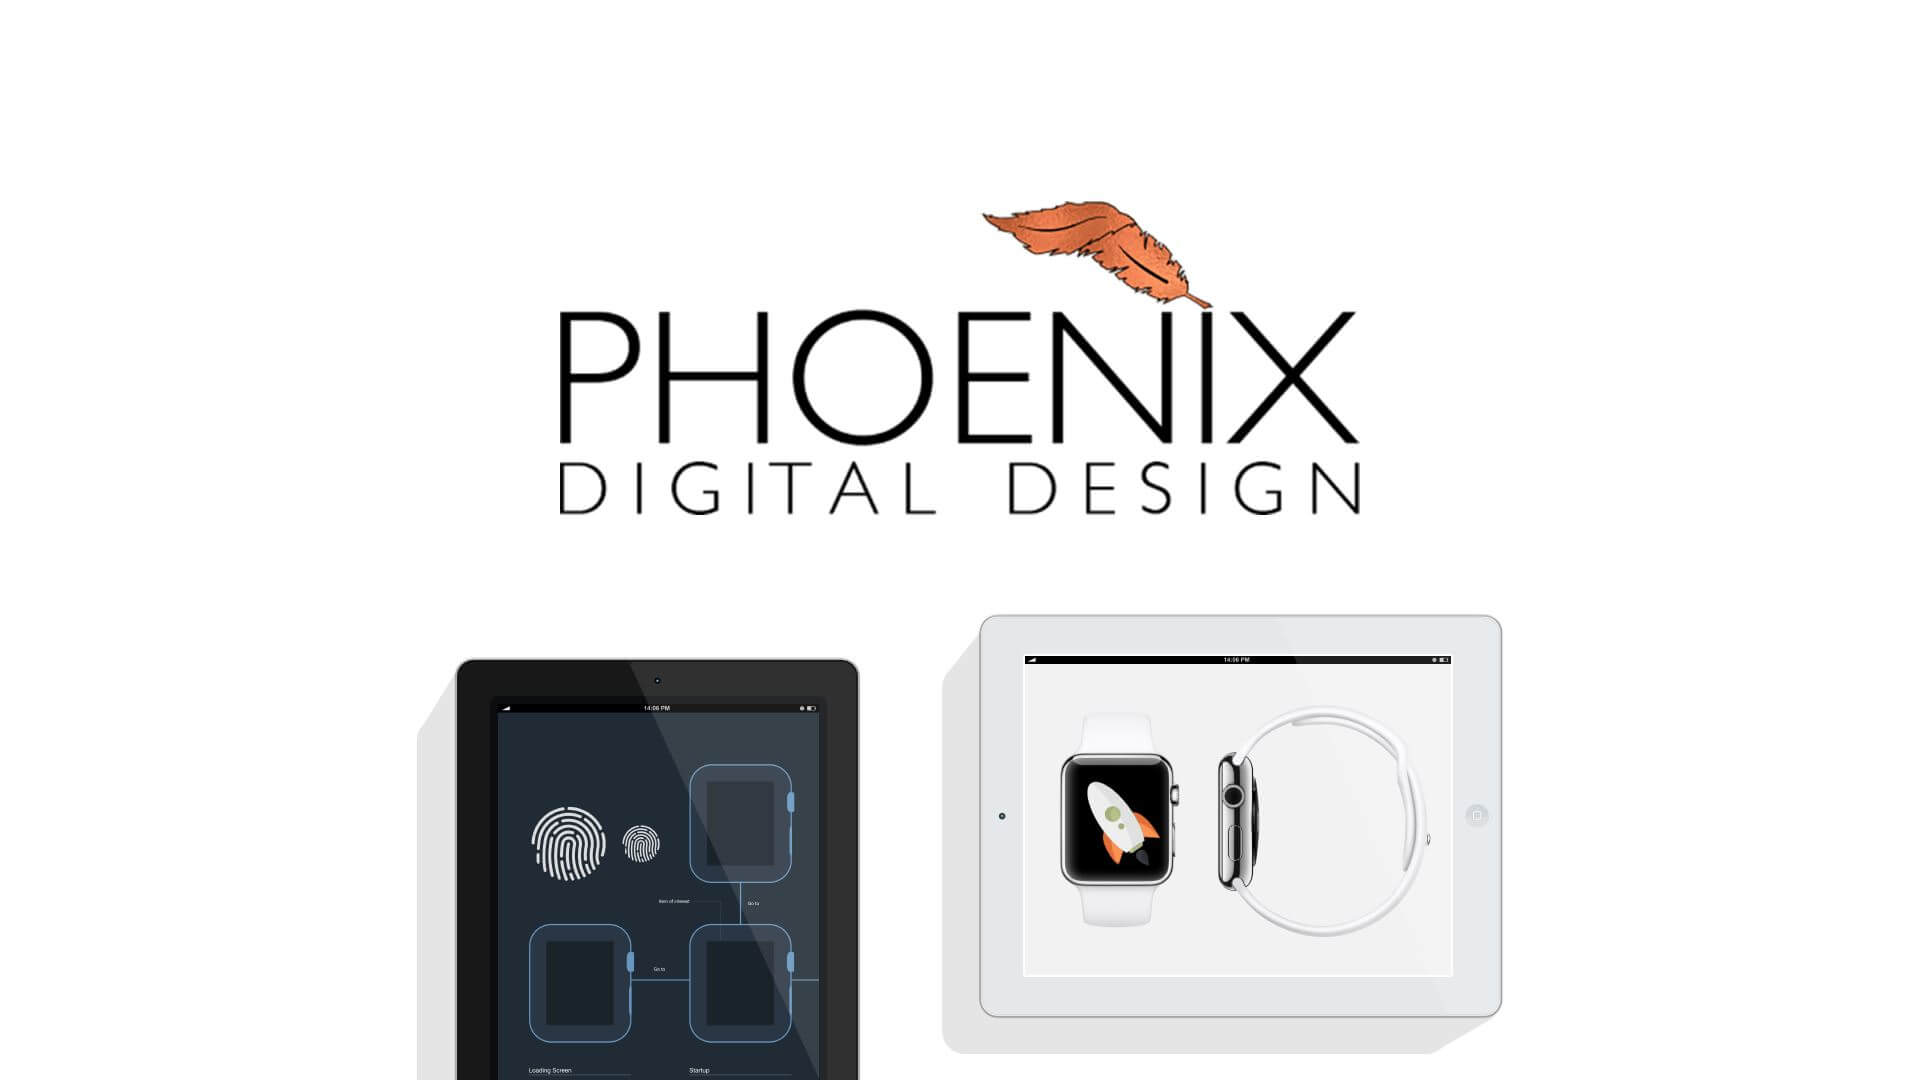 Phoenix Digital Design